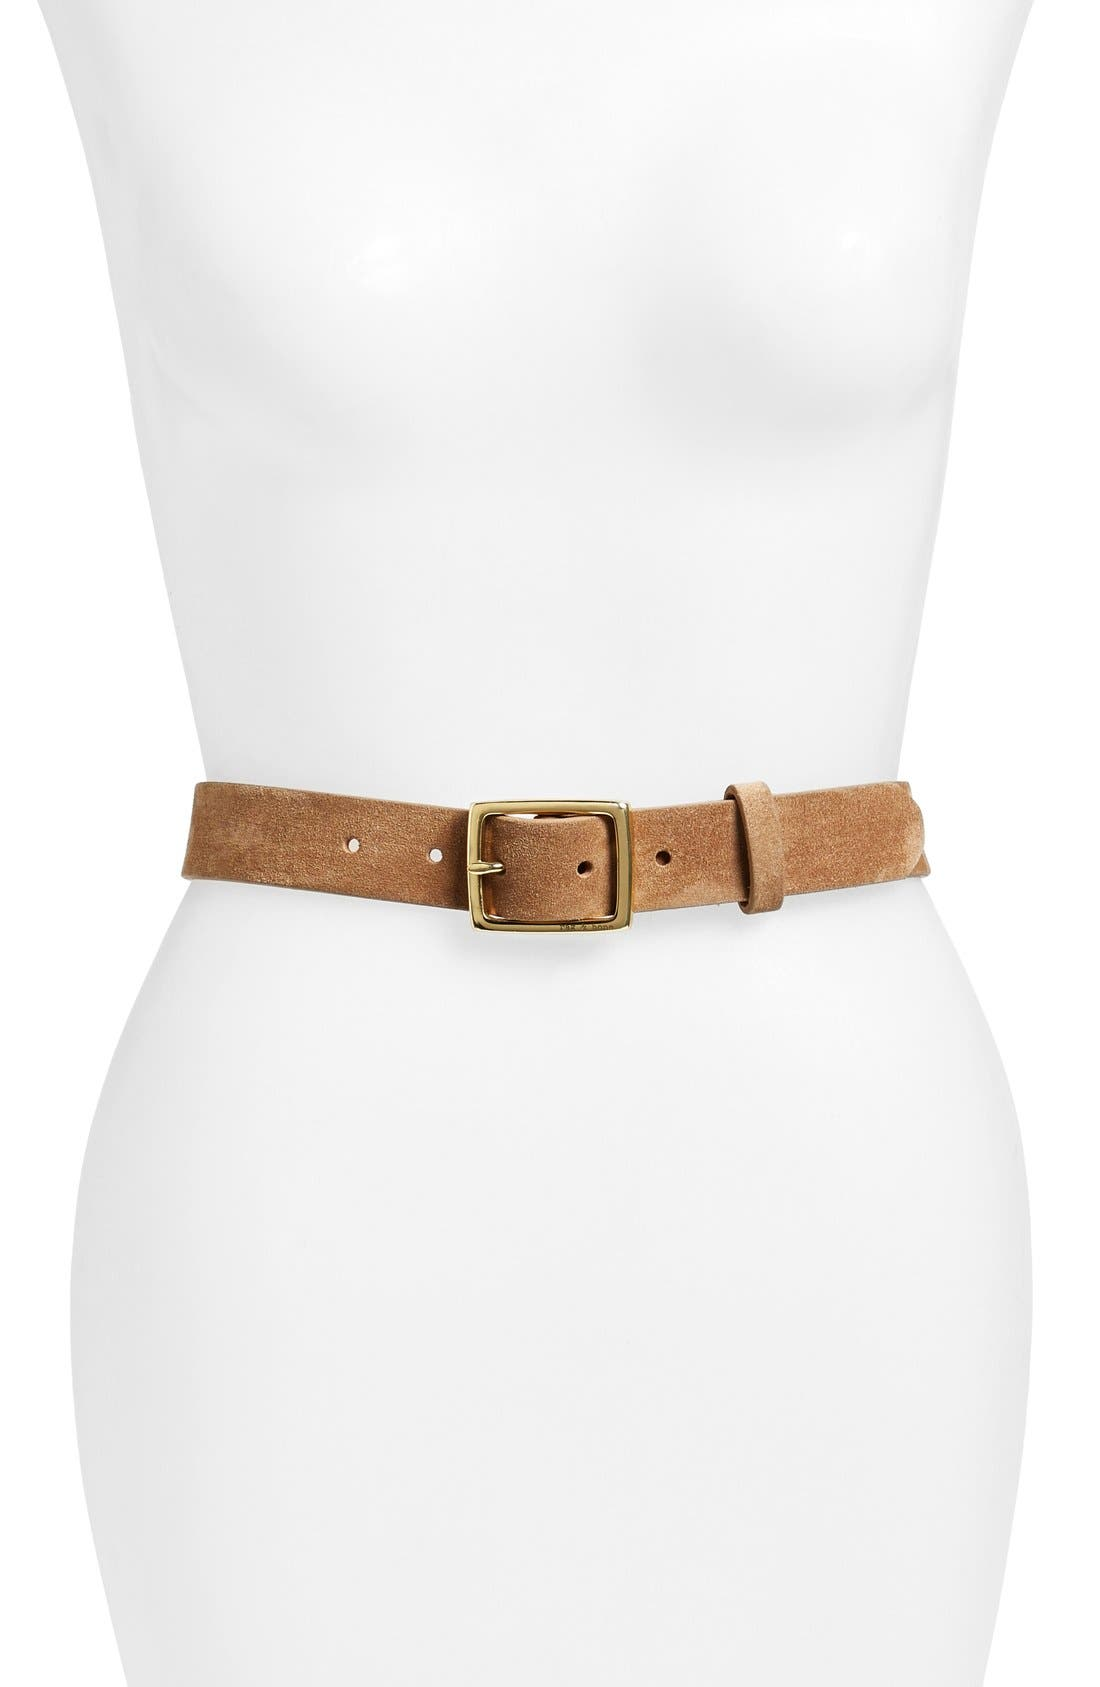 'Boyfriend' Leather Belt,                             Main thumbnail 1, color,                             CAMEL